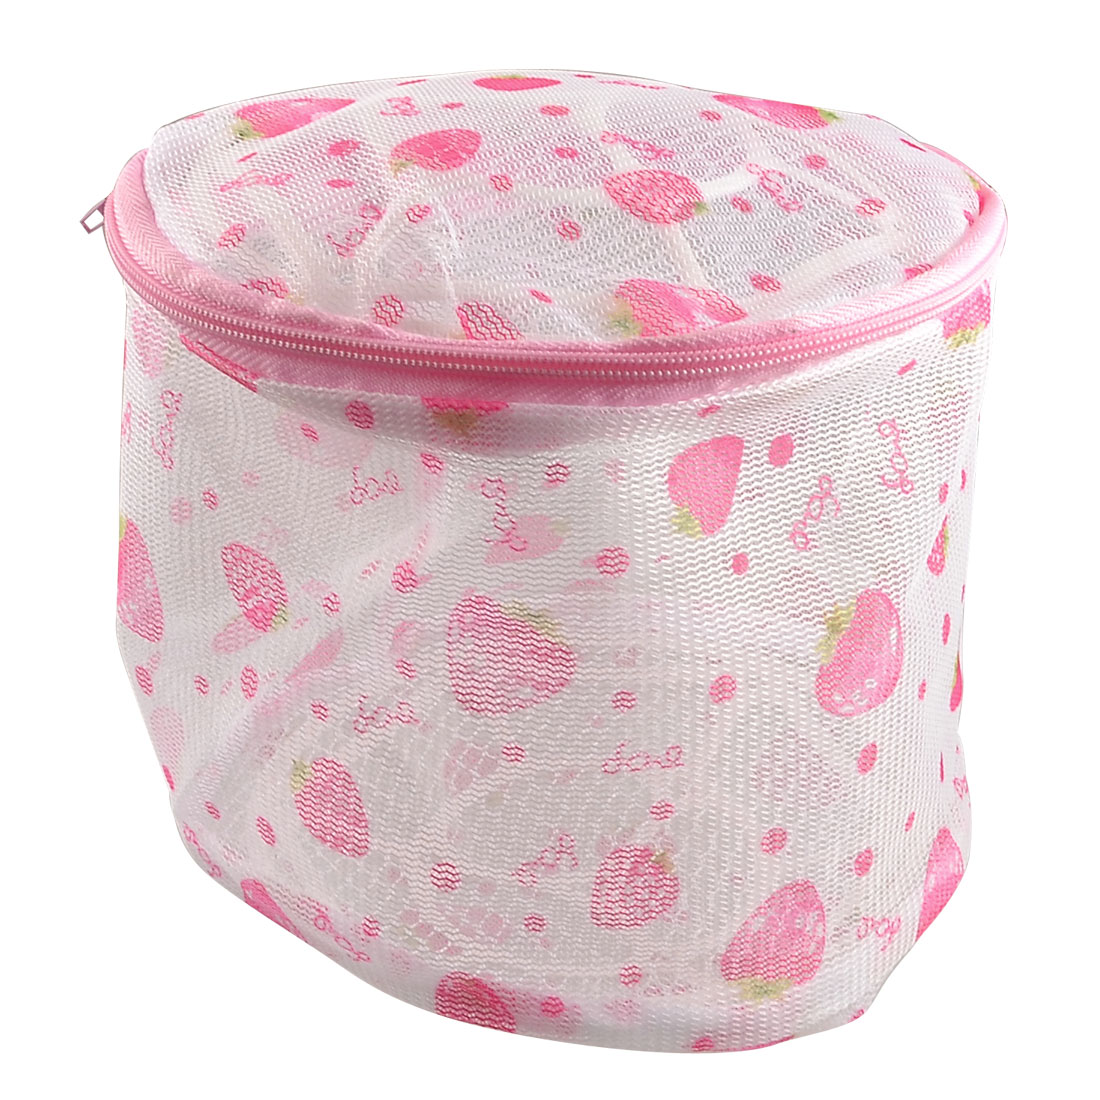 Zipper Lingerie Delicates Bra Mesh Wash Bag Home Household Net Washing Laundry Basket Strawberry Printed Pink White